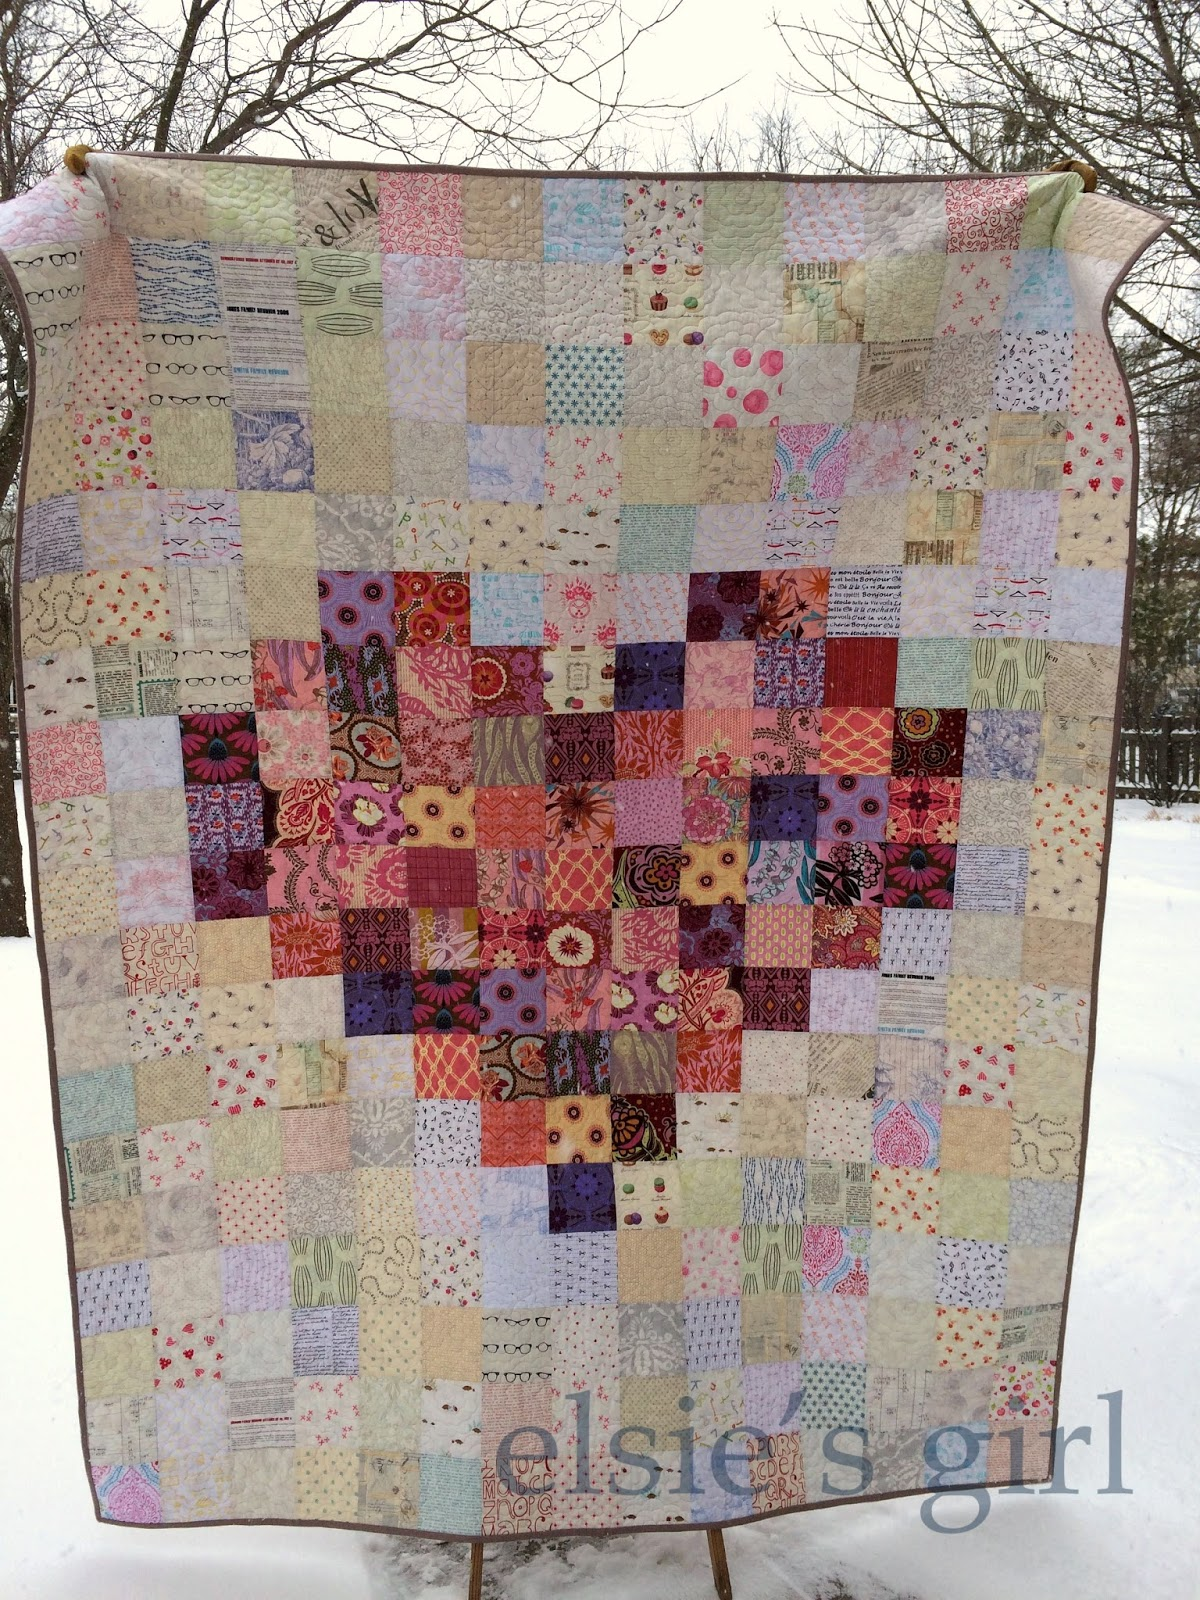 Charm Squares Make A Lovely Pixelated Heart Quilting Digest